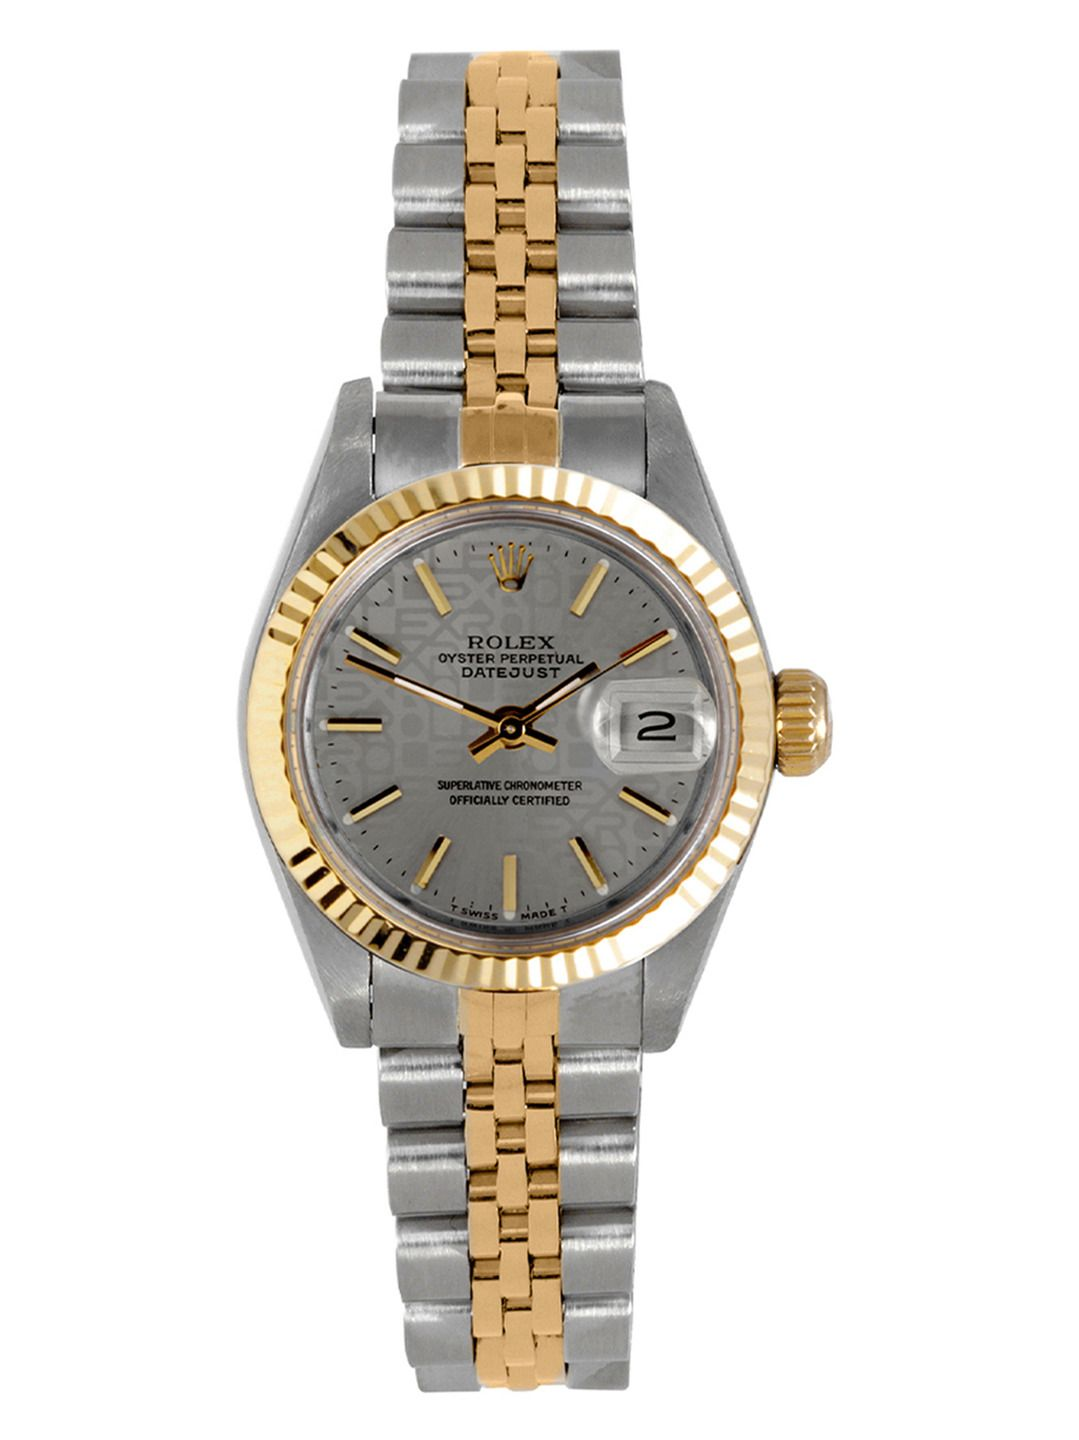 Rolex oyster perpetual datejust twotone patterned watch mm clock